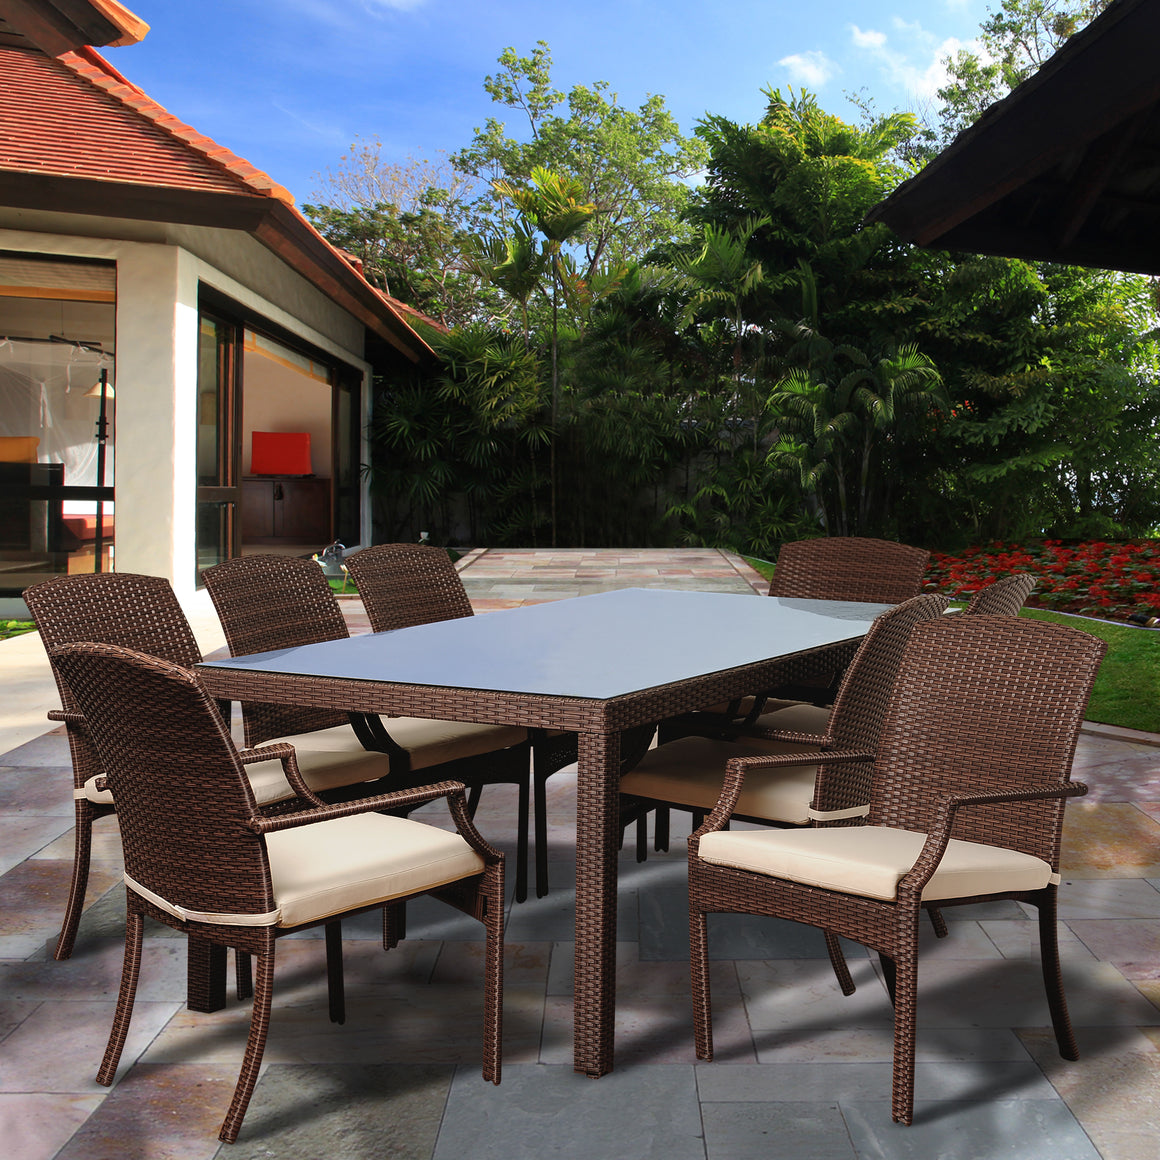 Rolland 8 Piece Brown Synthetic Wicker Rectangular Patio Dining Set , International Home Miami- grayburd